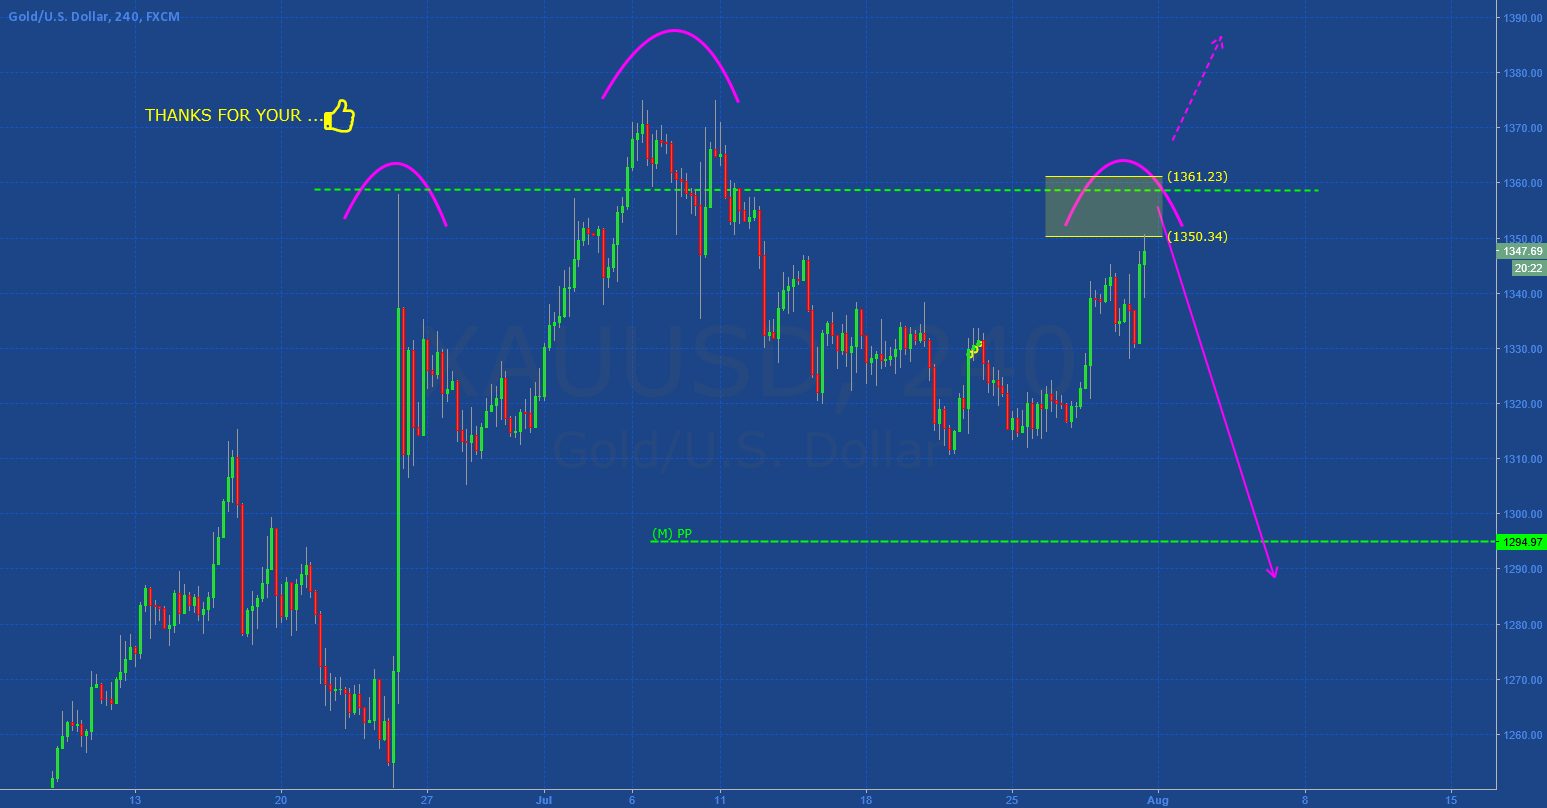 GOLD: RIGHT SHOULDER OR NEW HIGH?